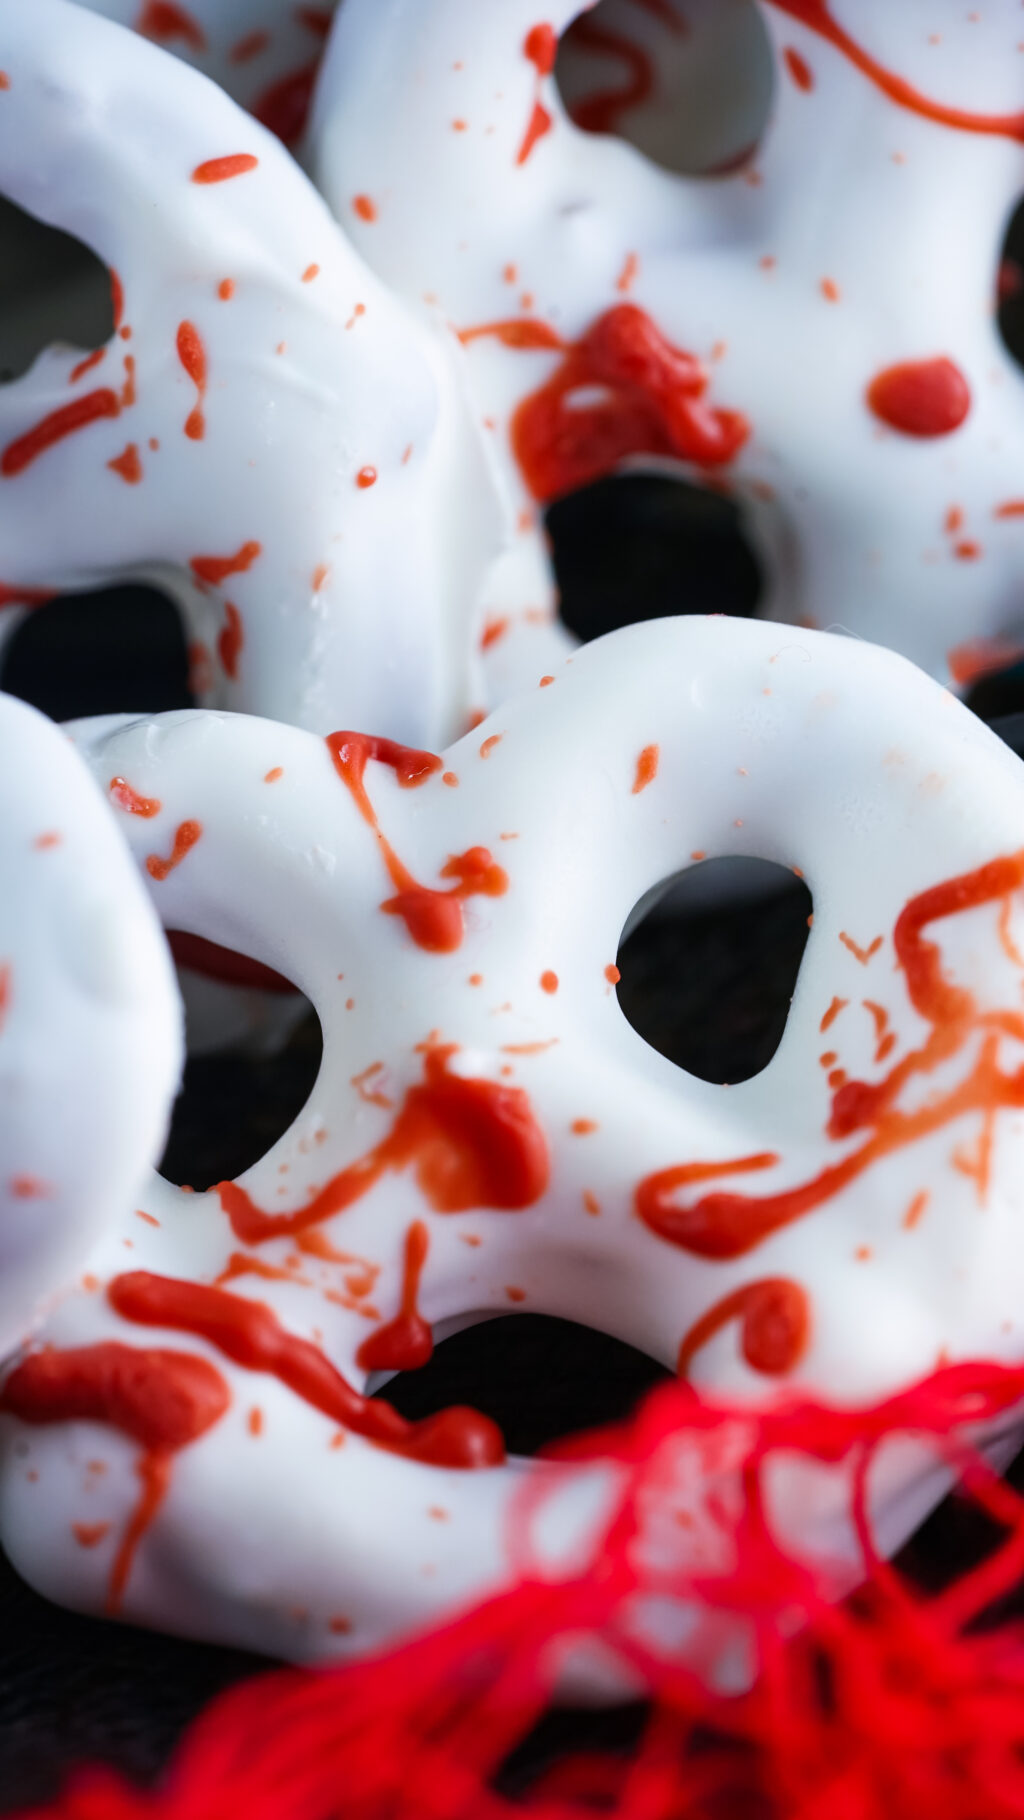 upclose image of a bloody pretzel for halloween